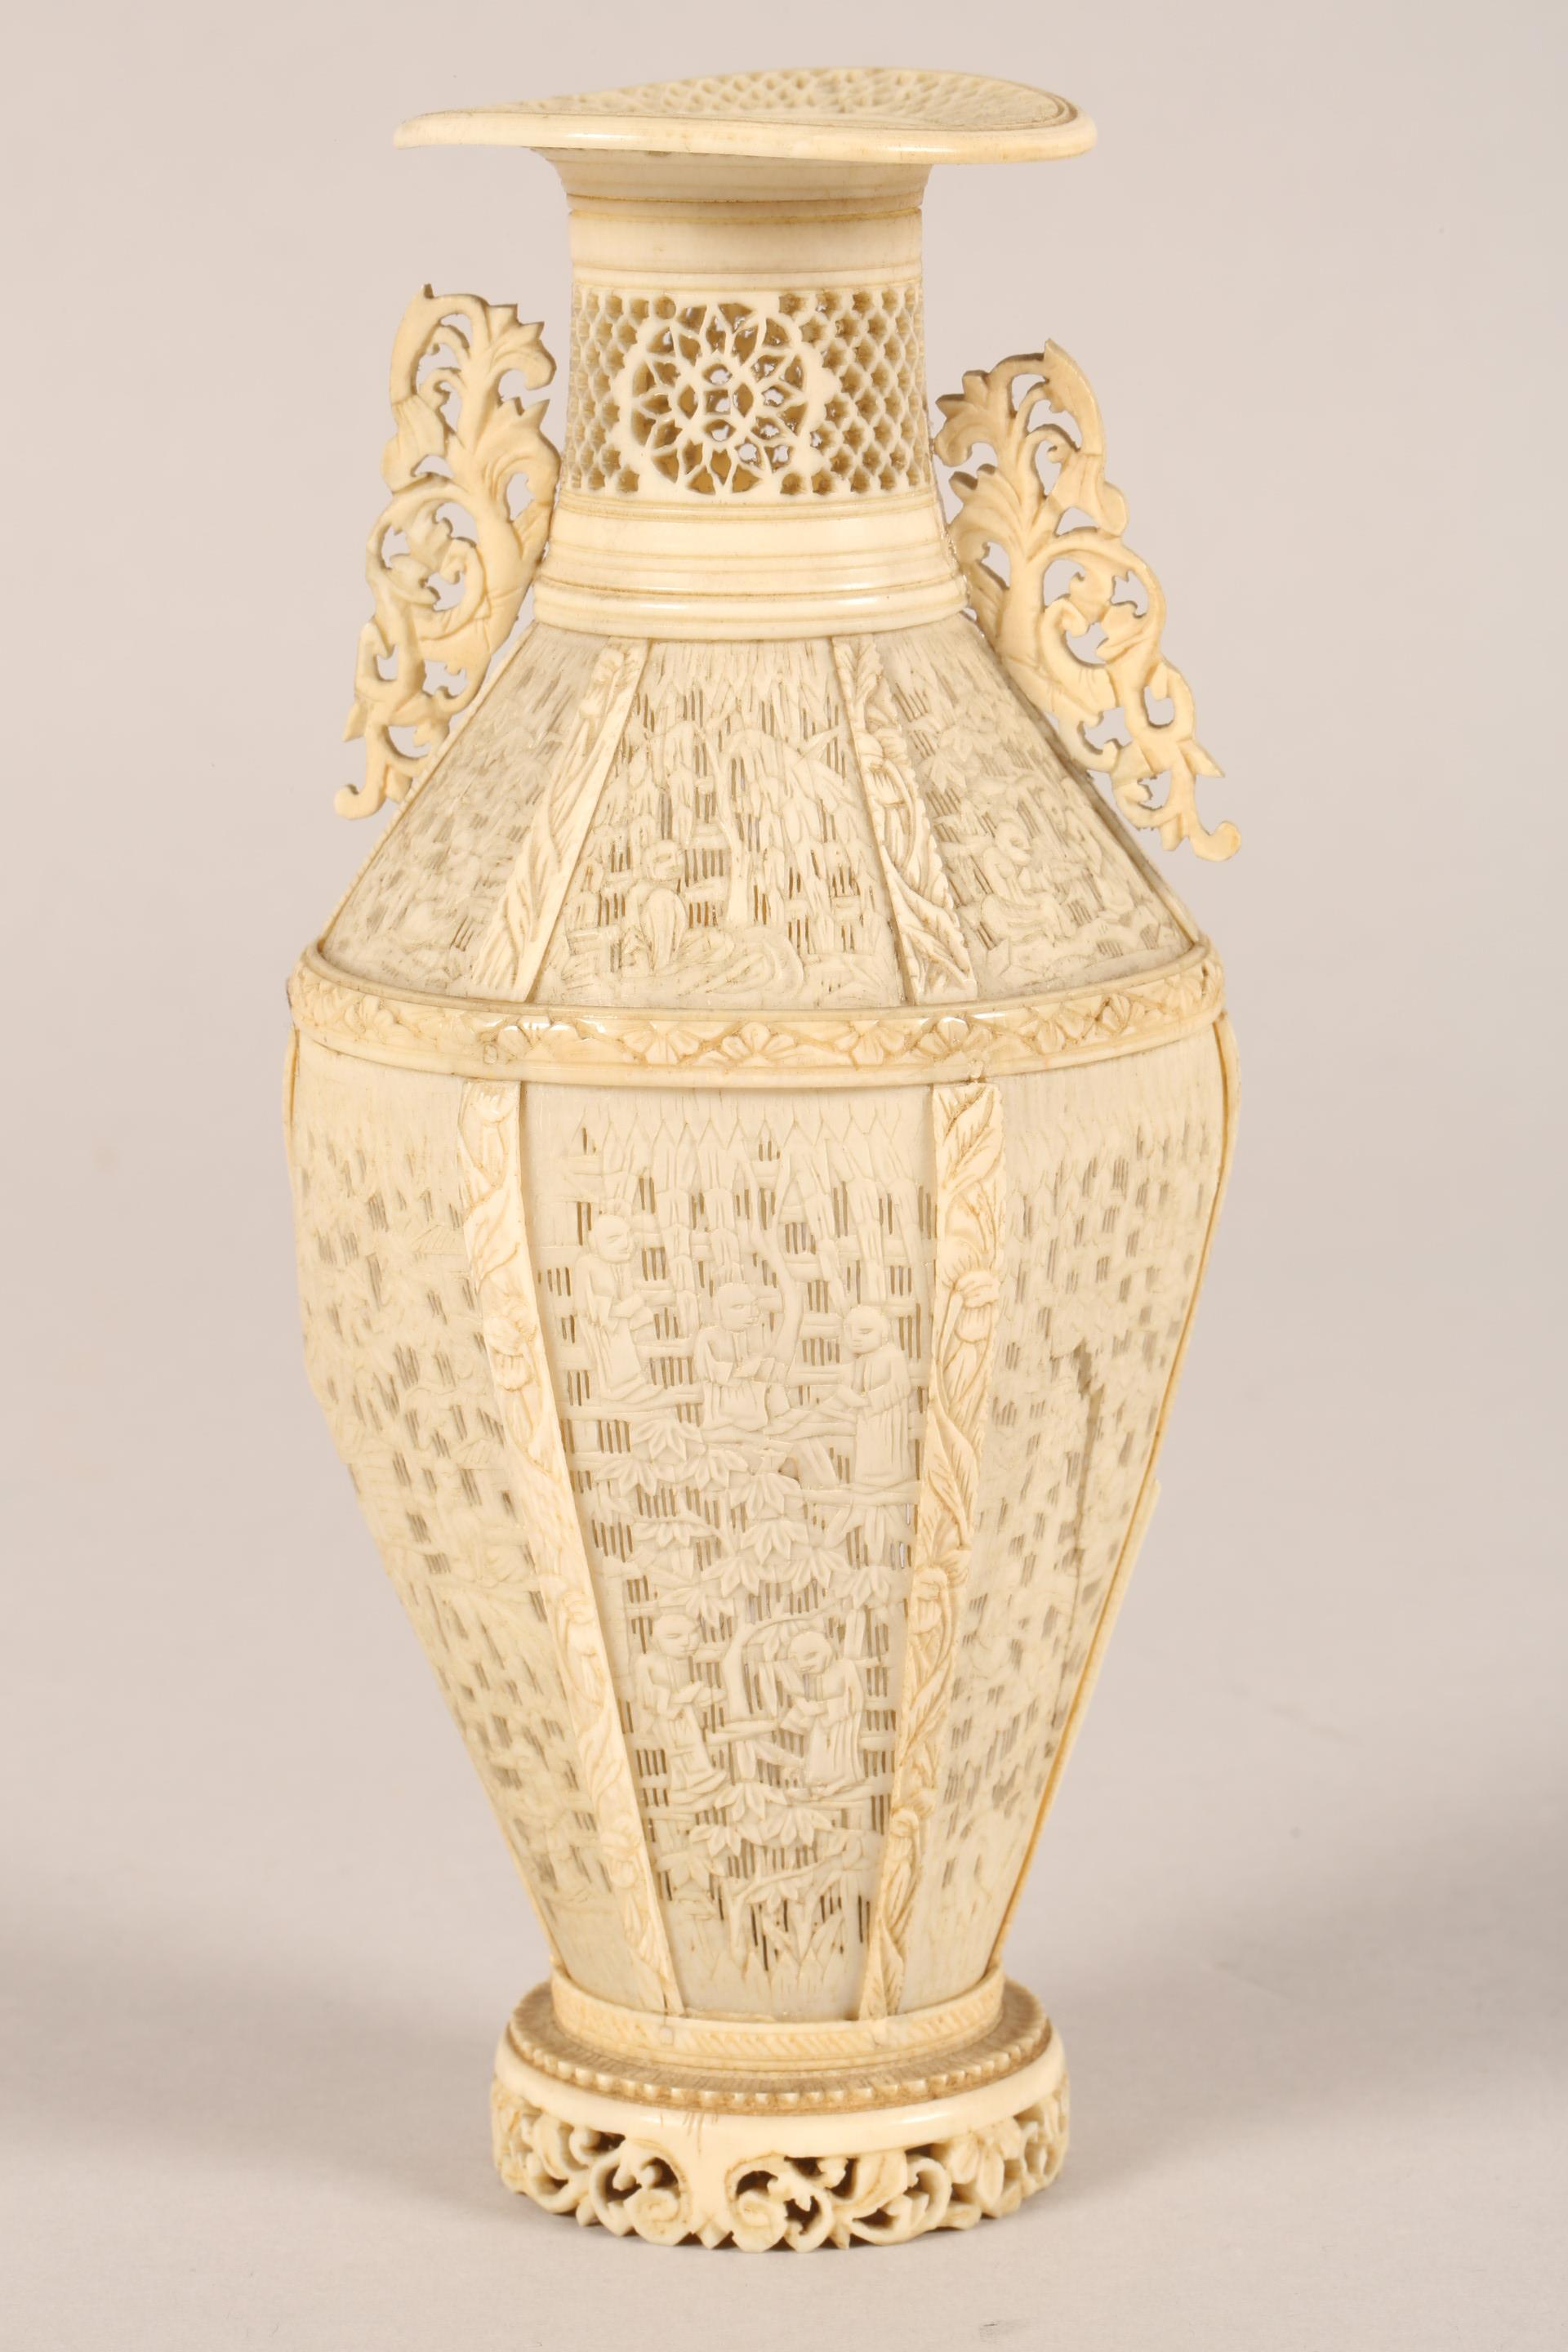 19th century Chinese Canton reticulated ivory twin handled vase (minor damages) 17.5cm high. - Image 3 of 7